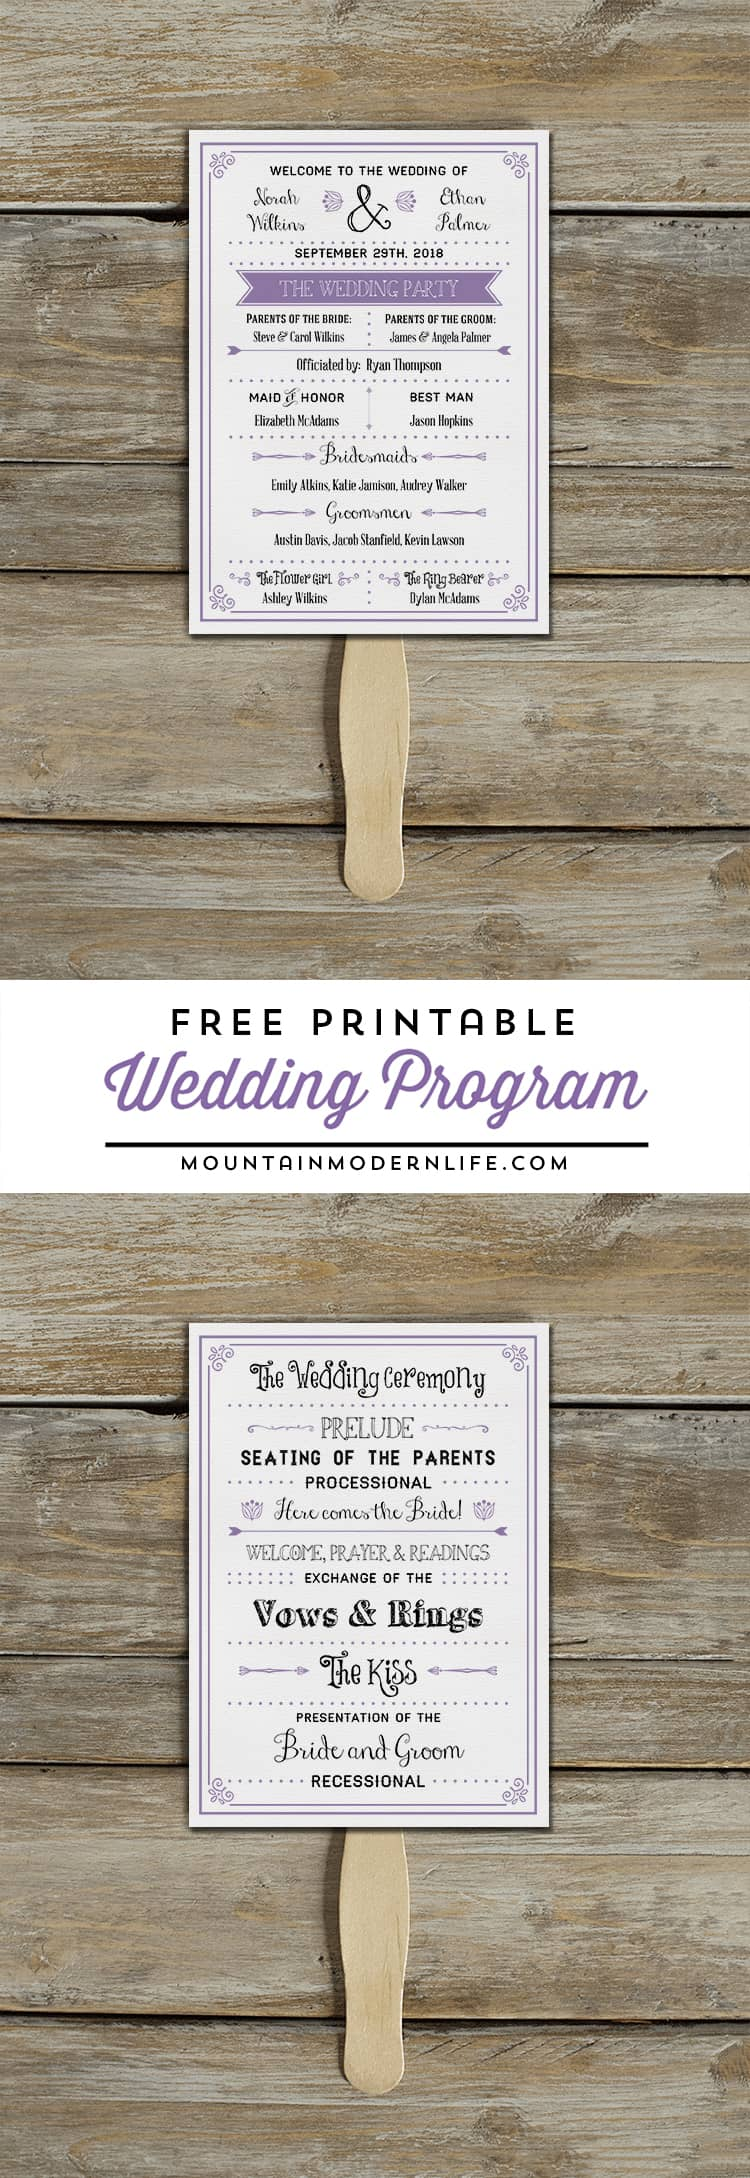 Free printable wedding program for Free wedding program templates